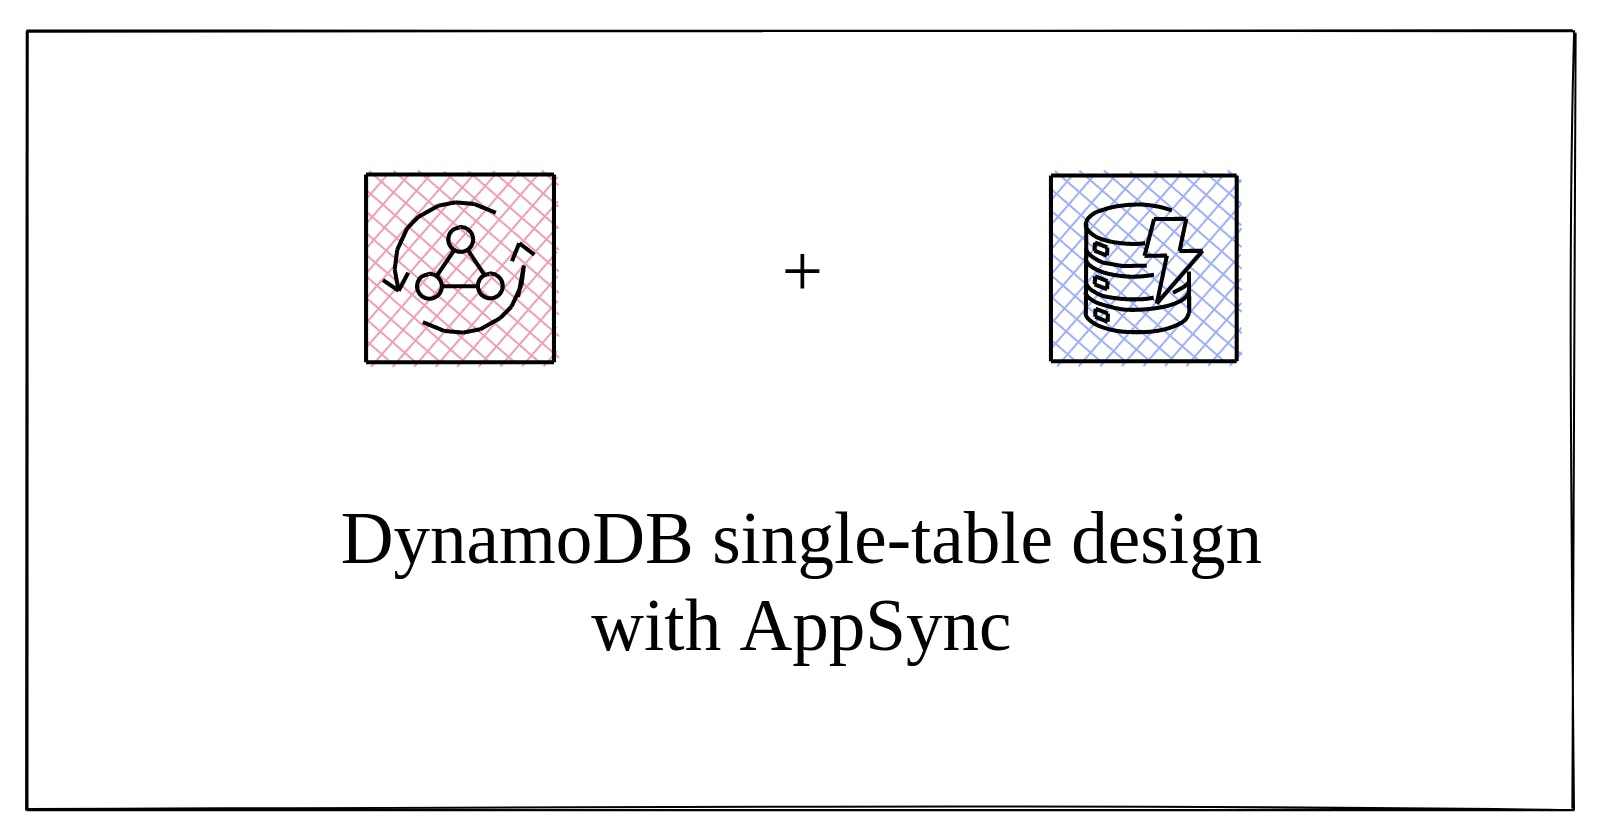 How to use DynamoDB single-table design with AppSync